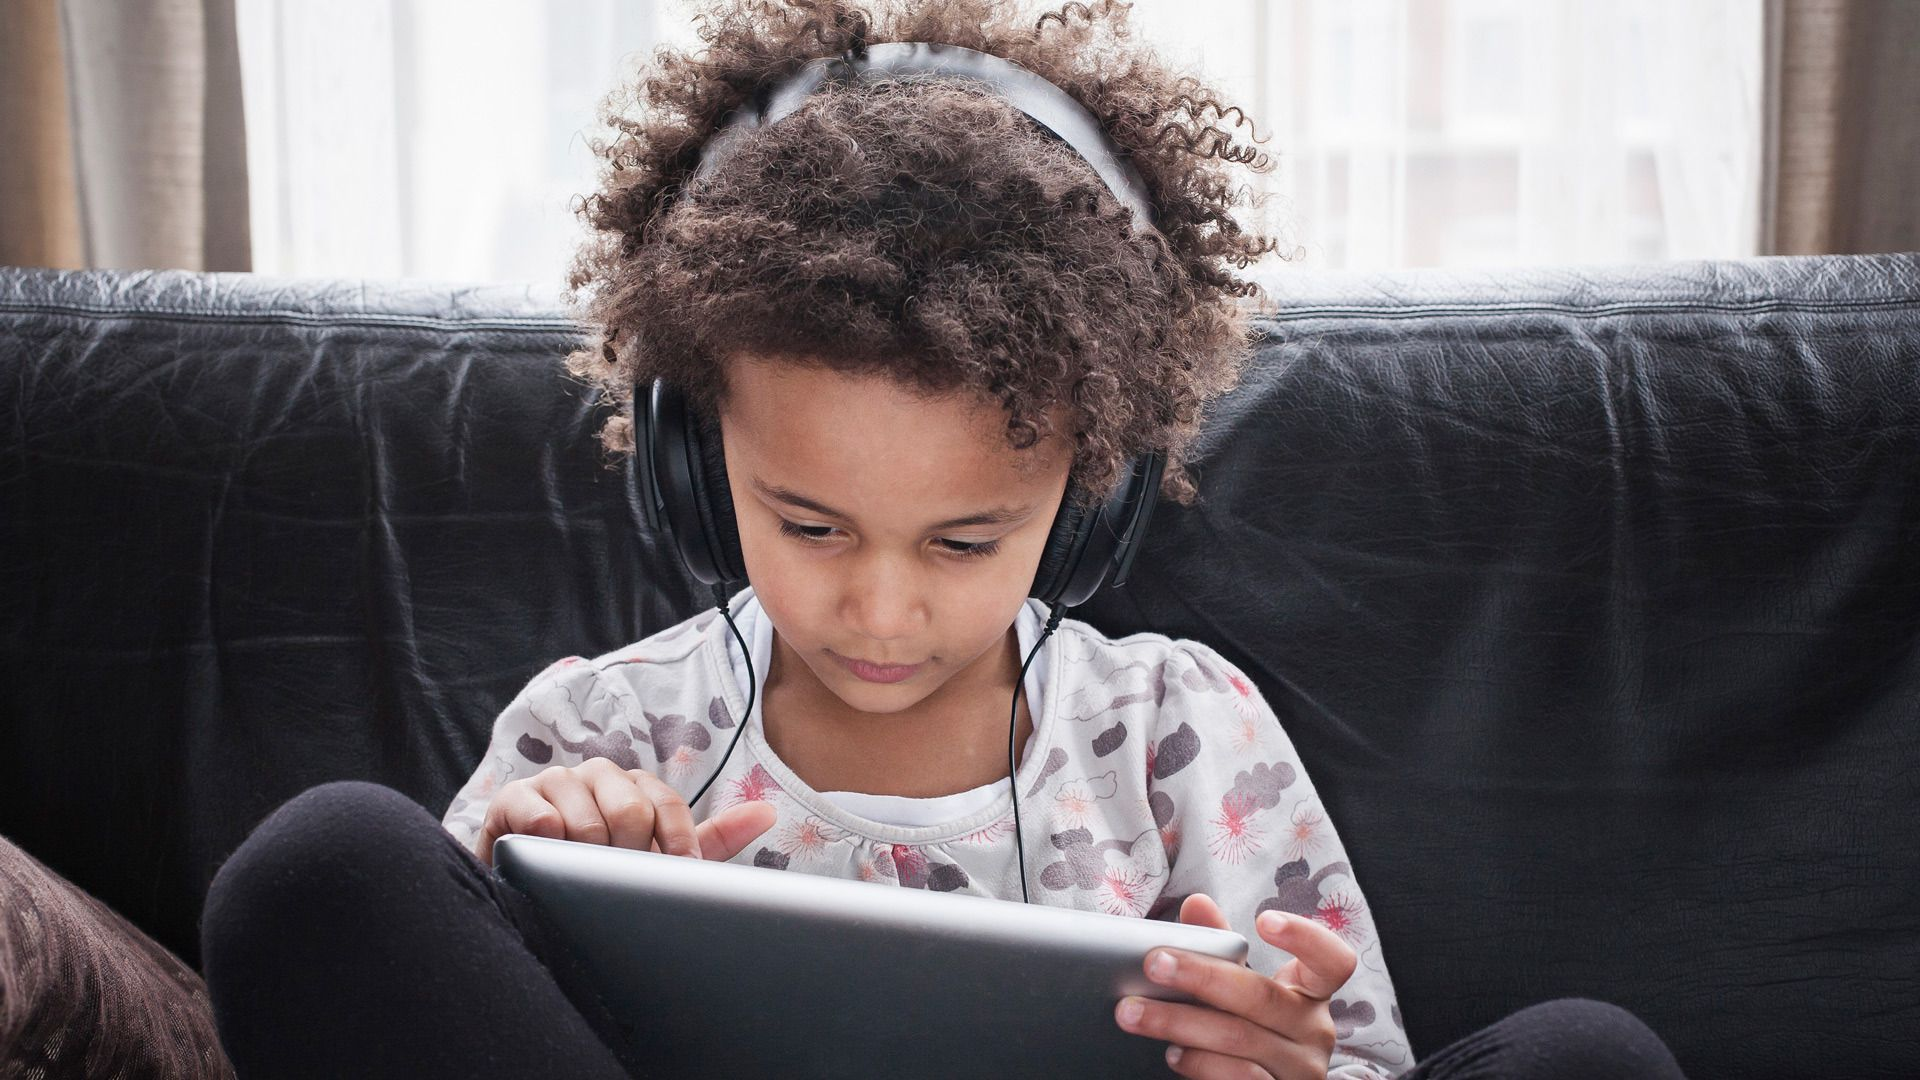 How to protect your kids' eyes and ears from too much screen time